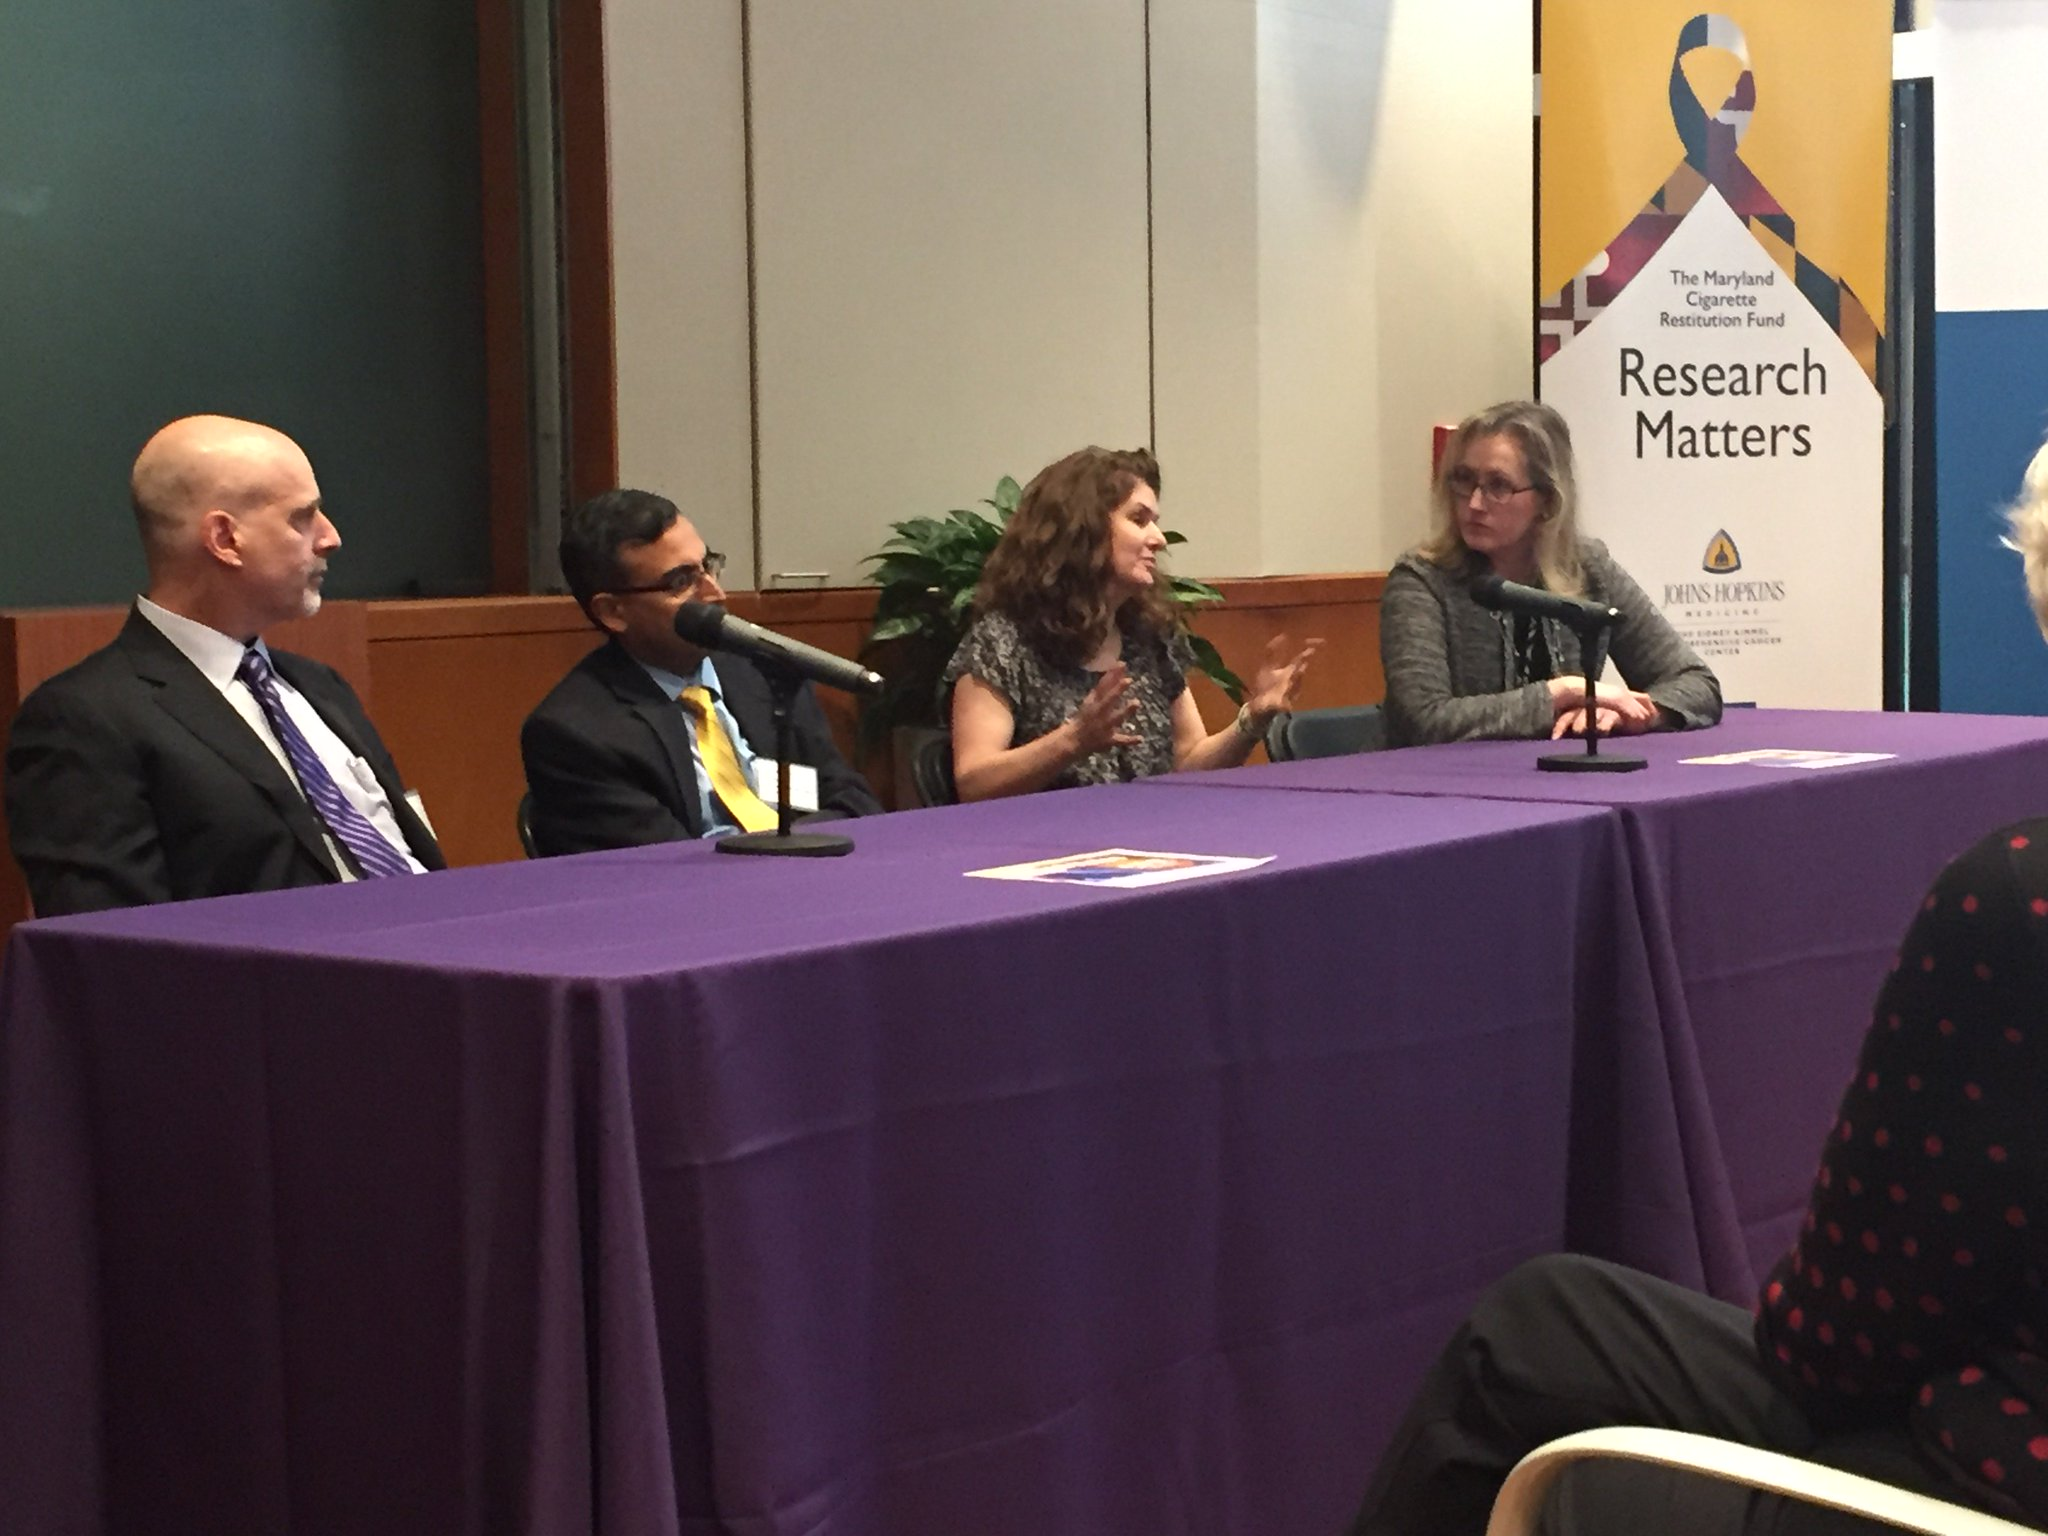 #ResearchMatters panelists answer questions https://t.co/PFFN25d3Ct